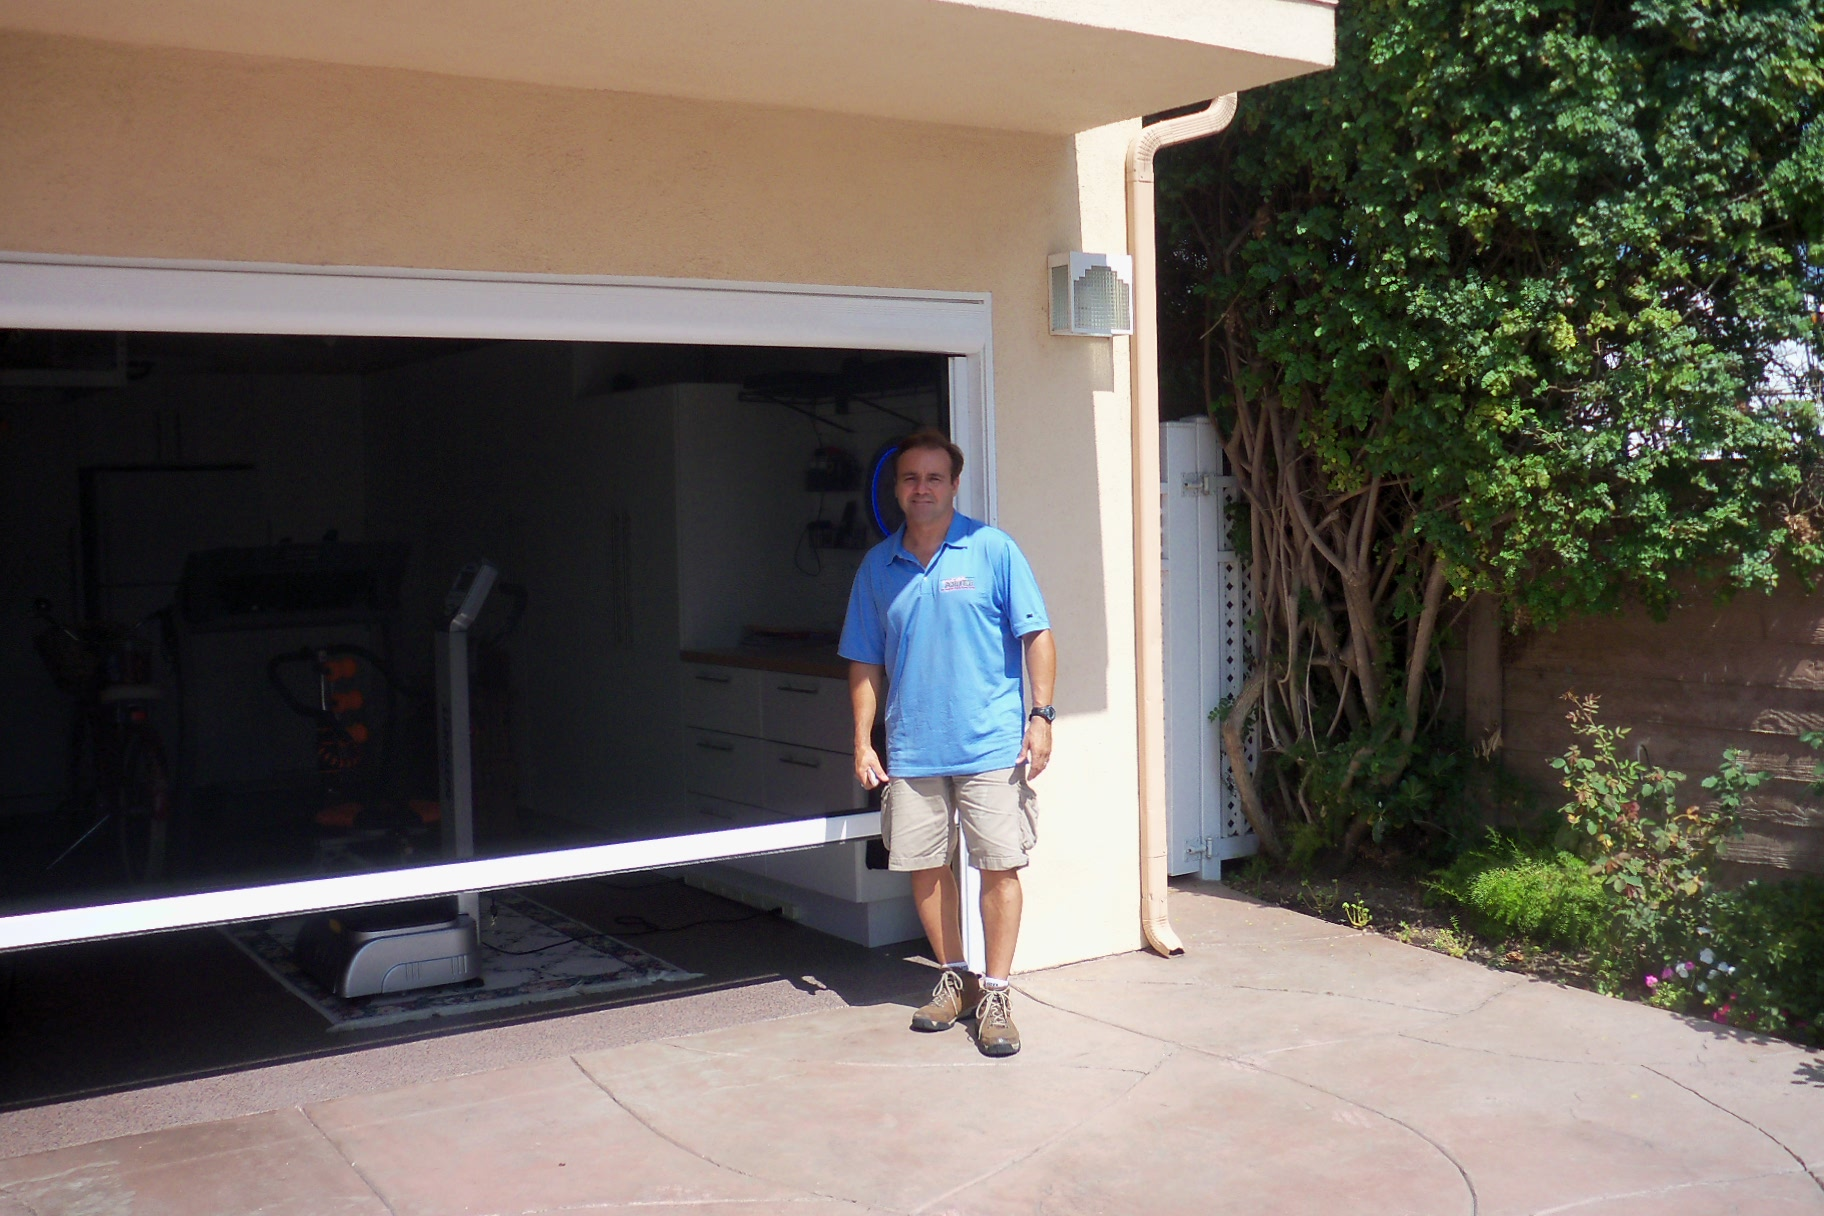 Motorized Power Screen For Garage Door